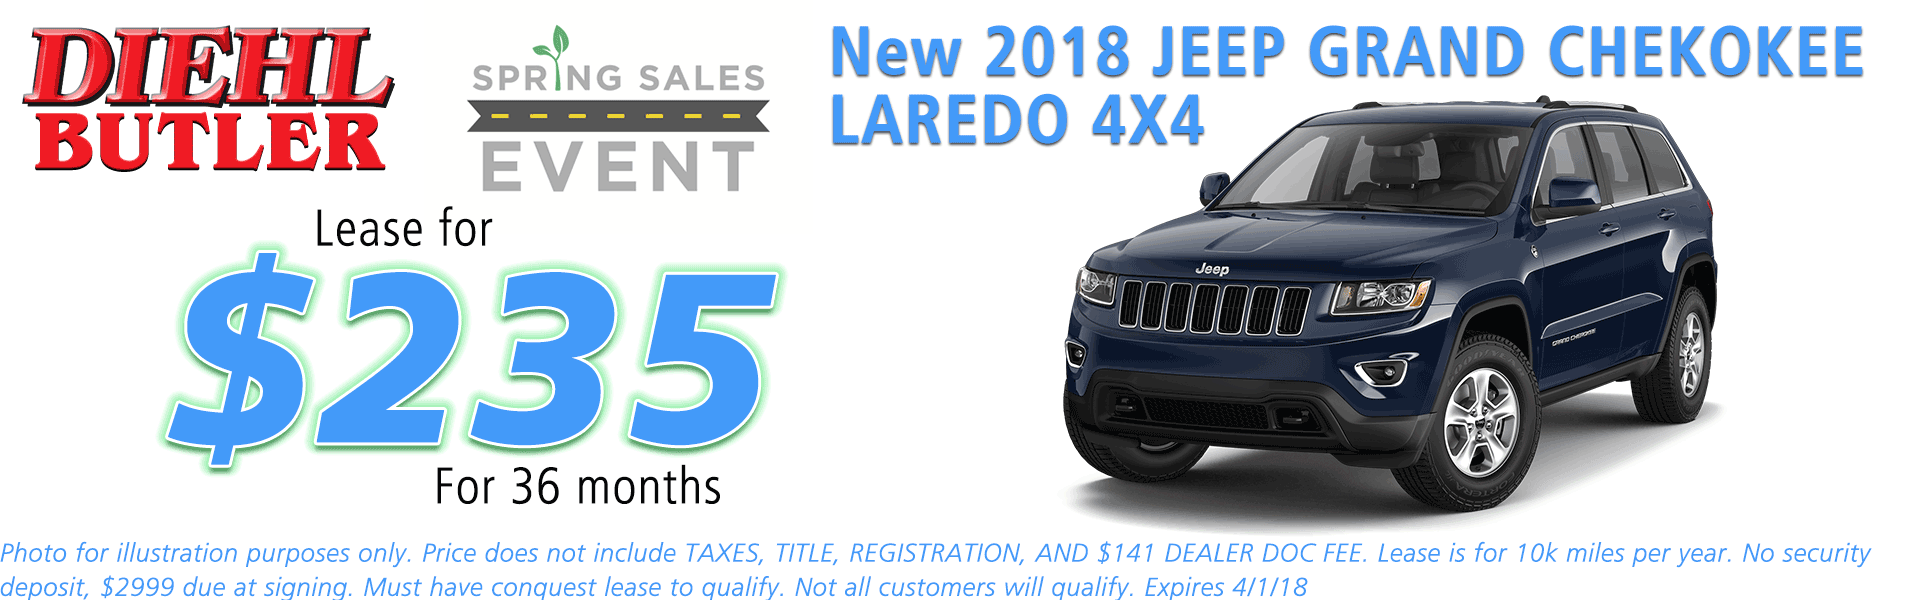 NEW 2018 JEEP GRAND CHEROKEE LAREDO E 4X4 diehl chrysler jeep dodge ram serving butler cranberry mars saxonburg and pittsburgh